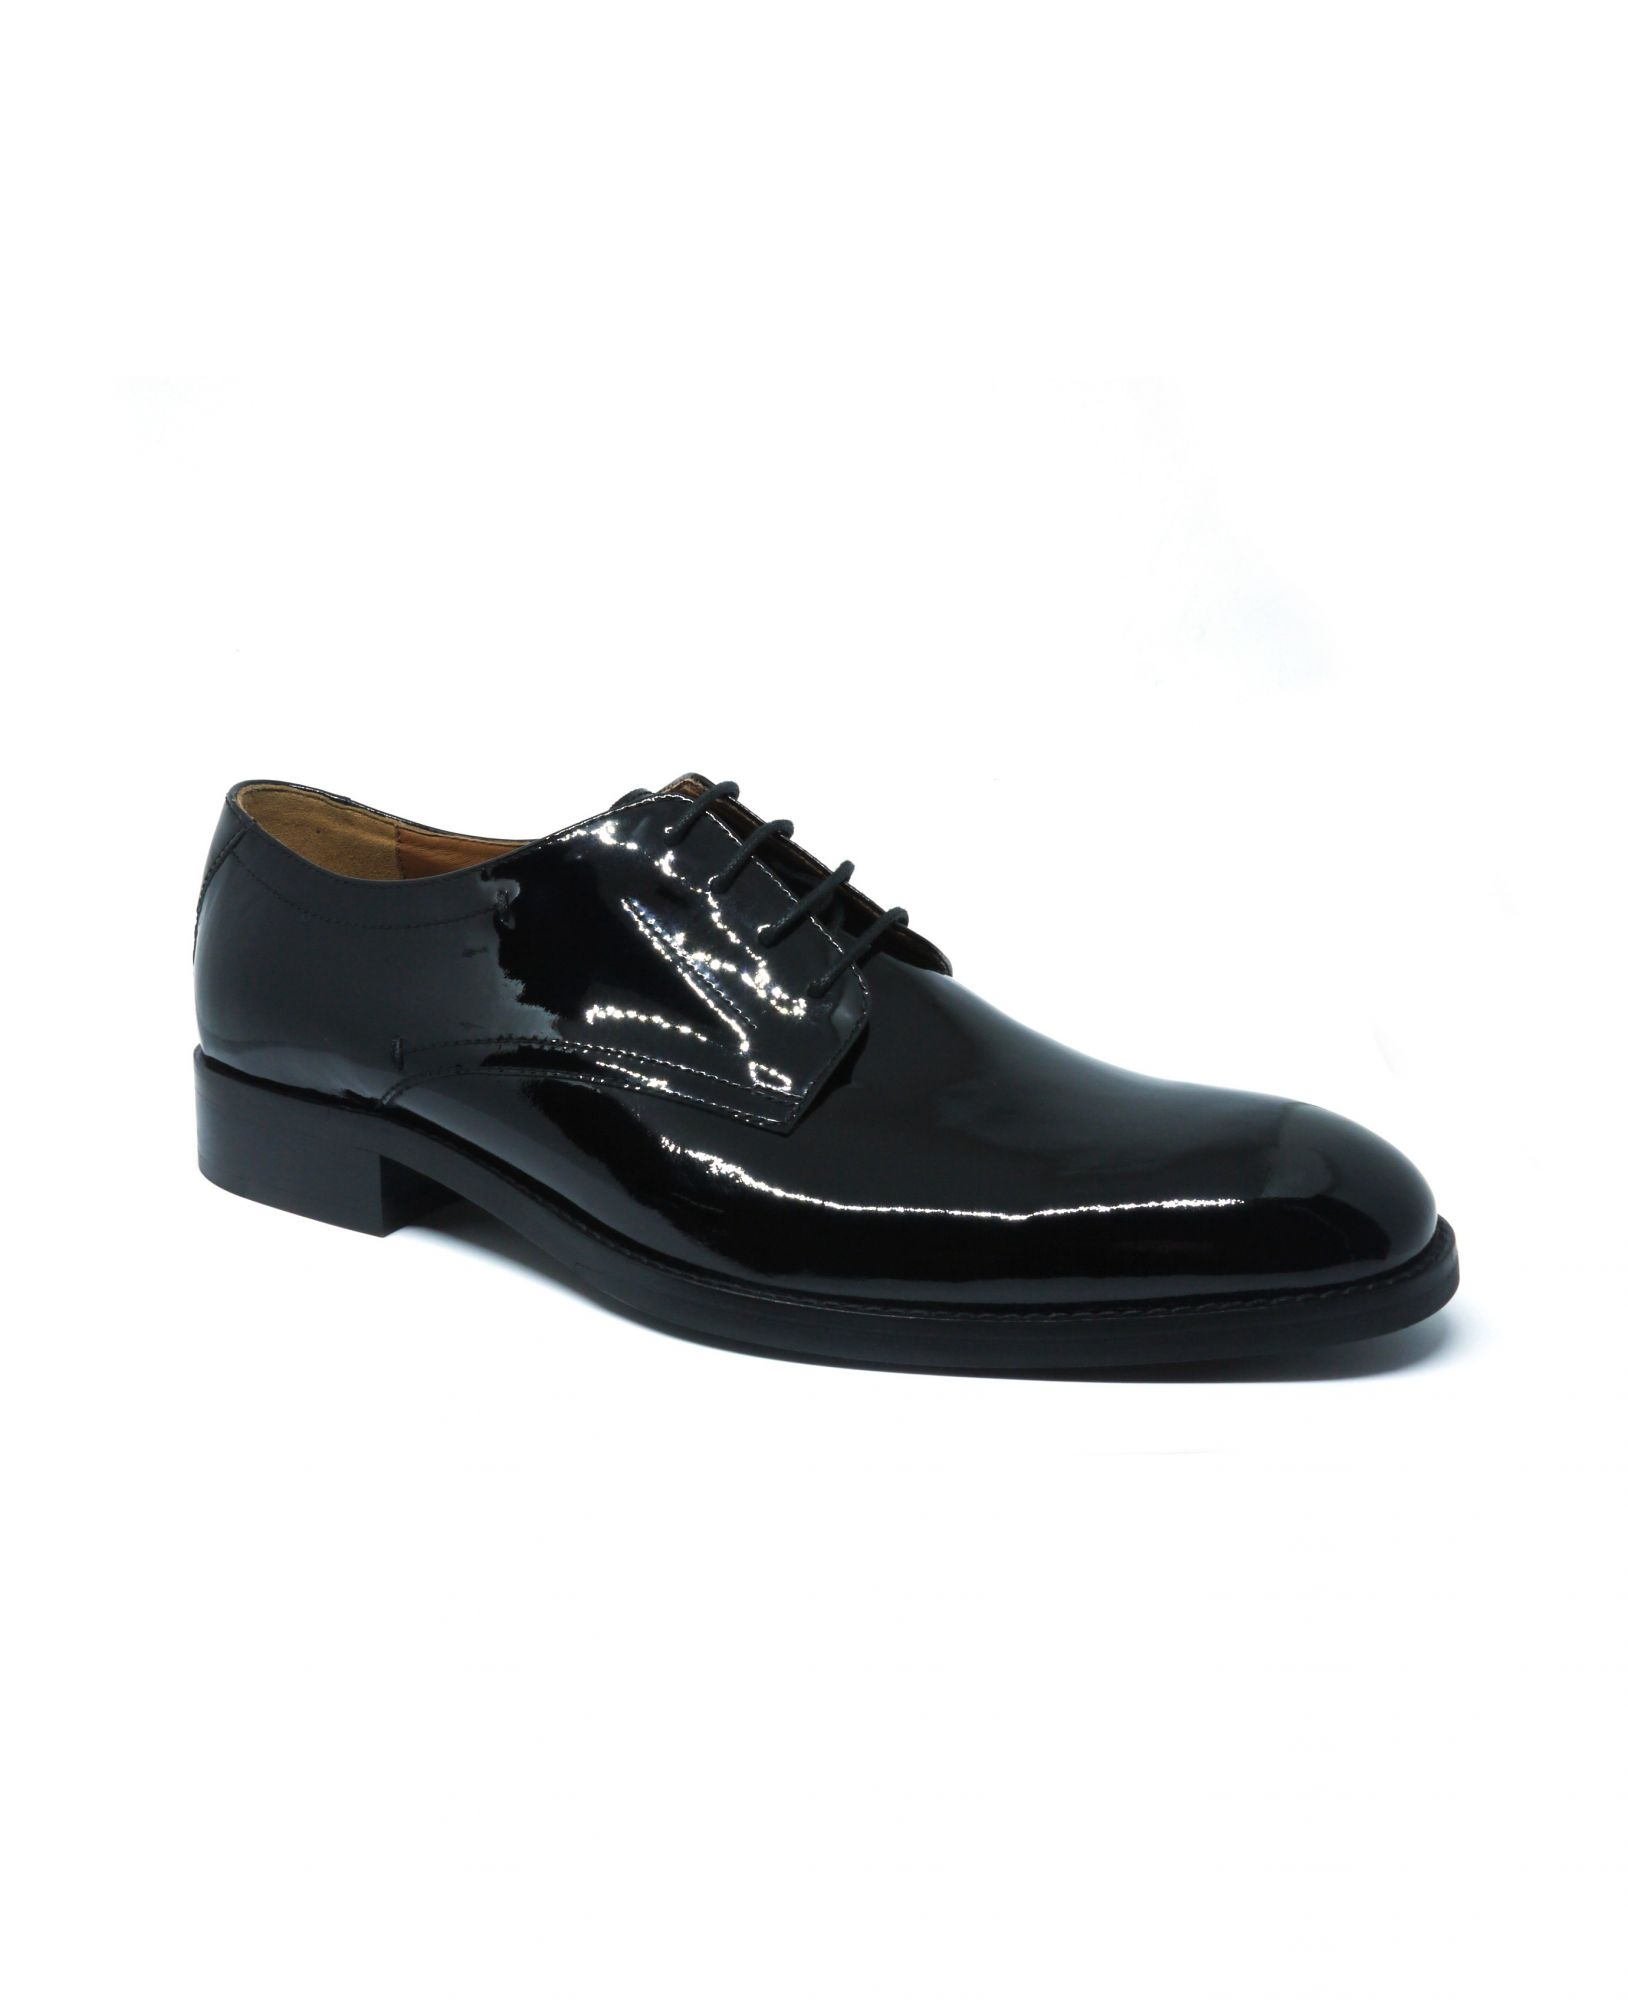 Black Patent Leather Derby Shoes 9